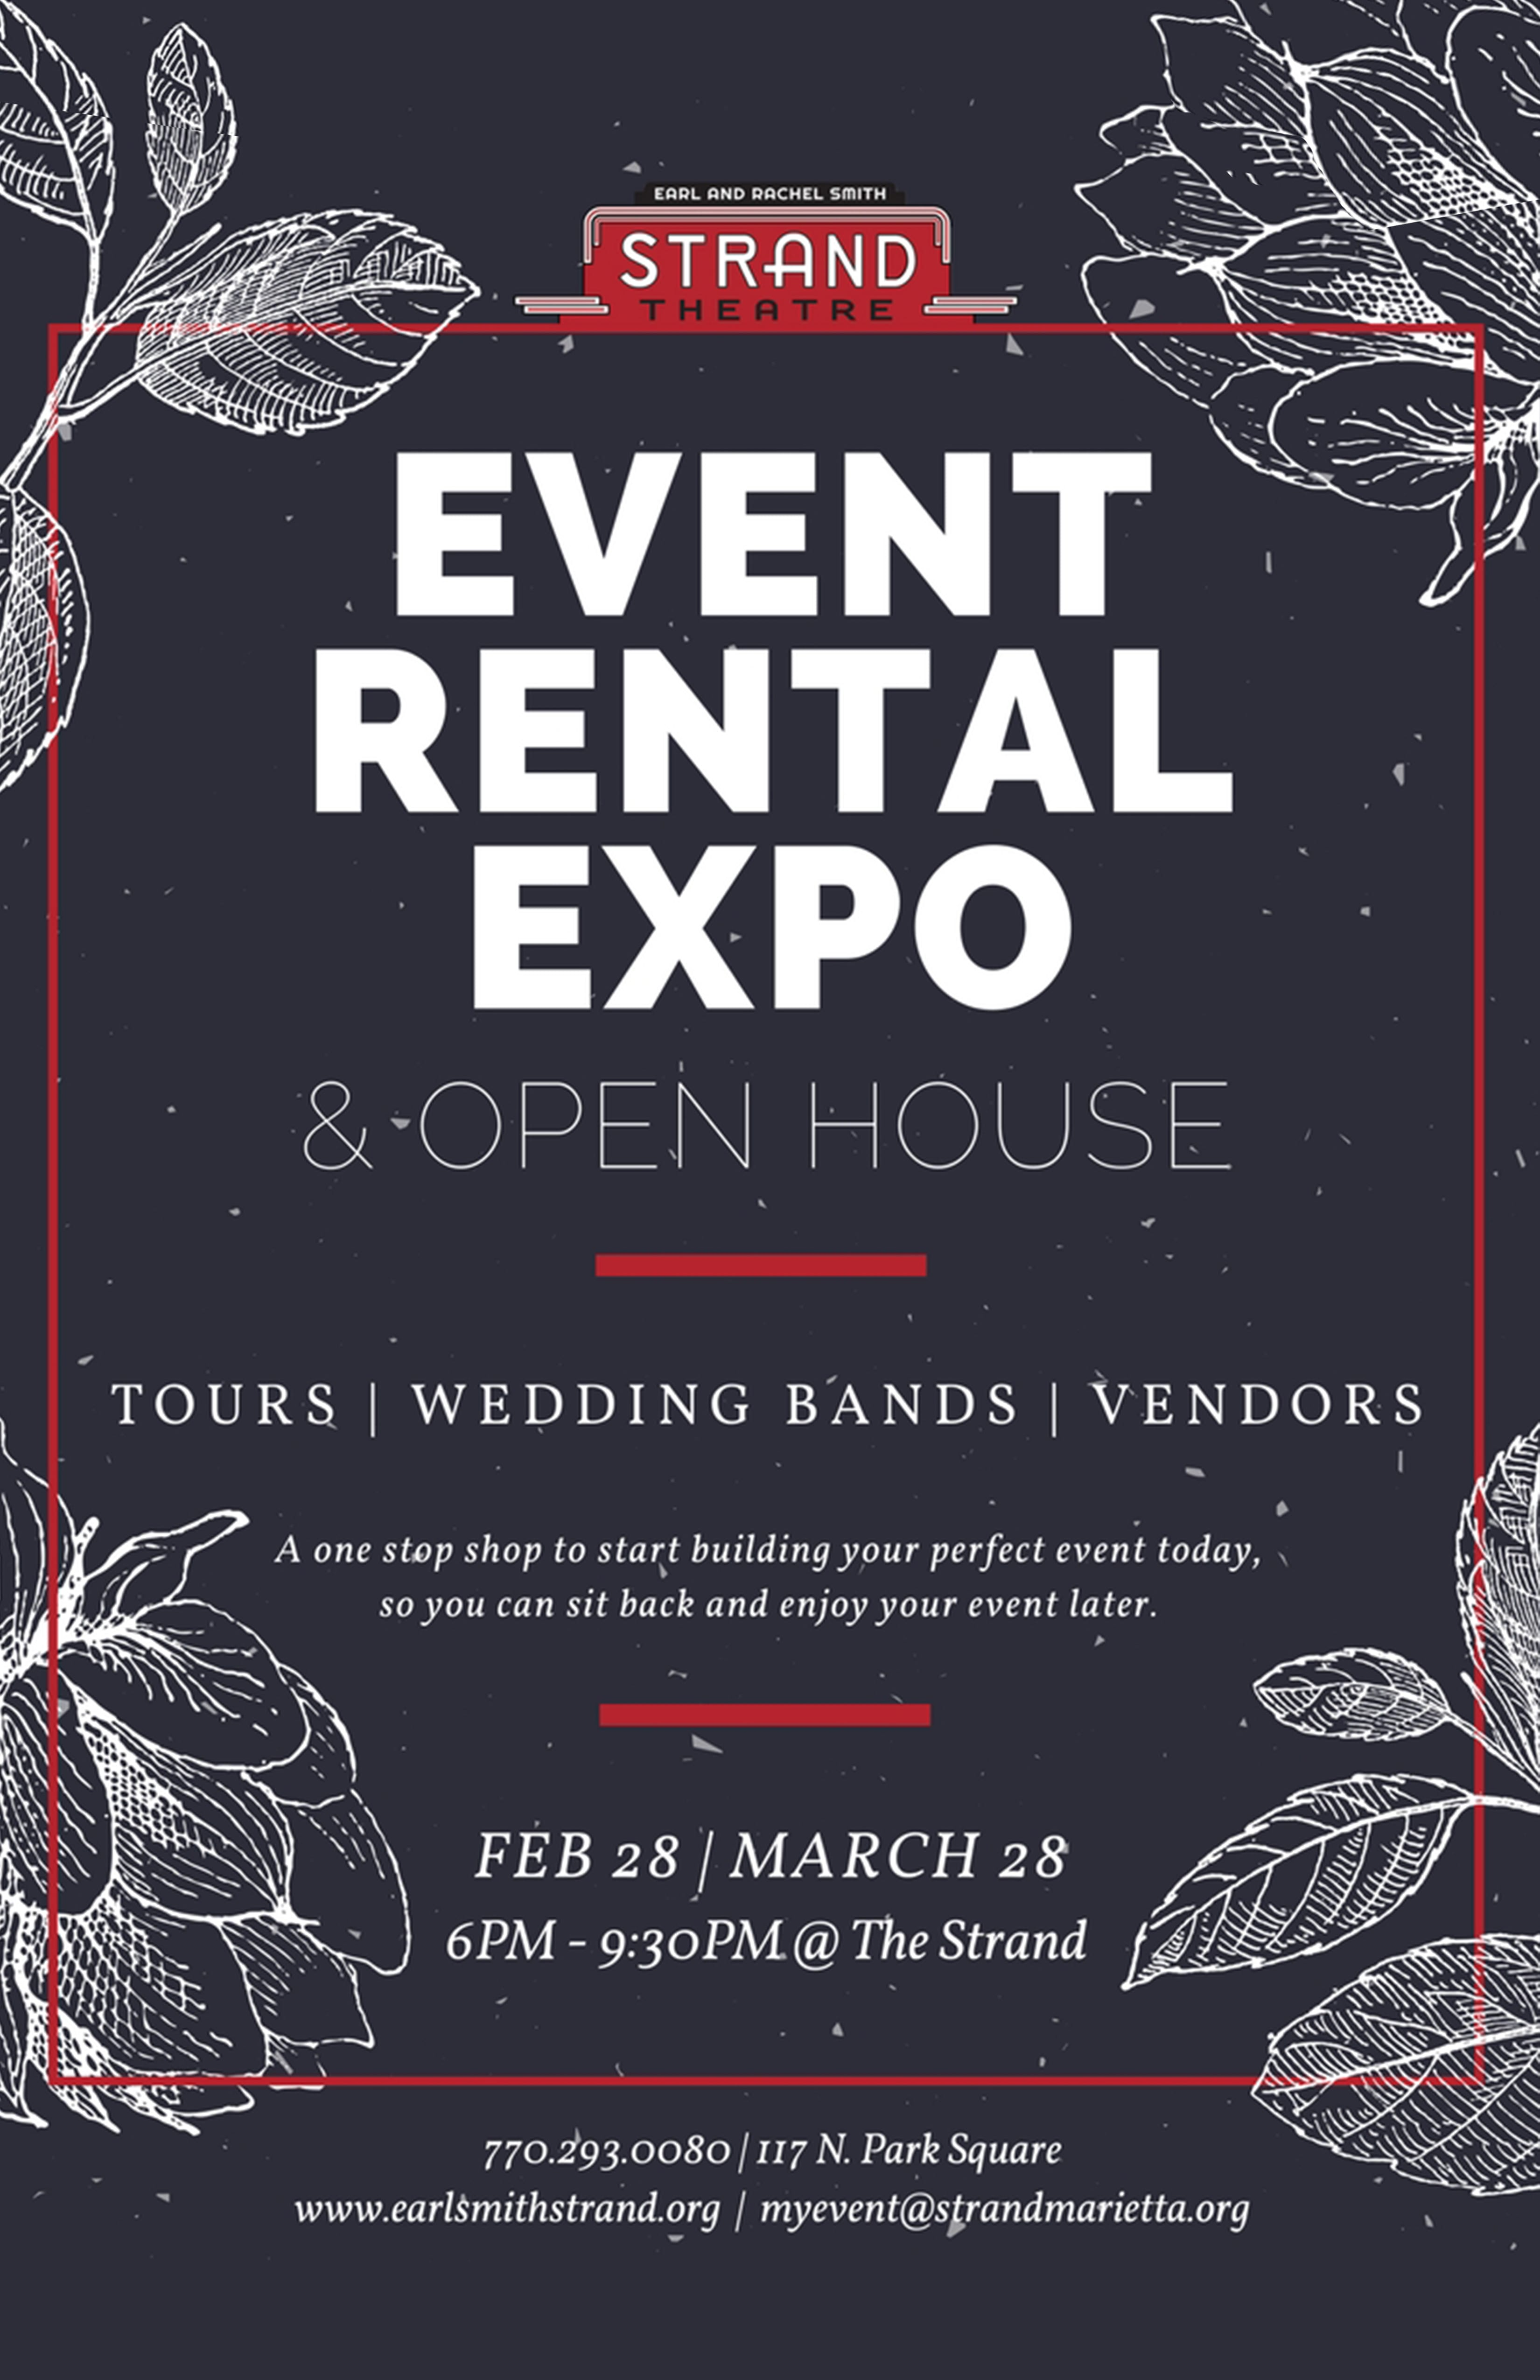 Poster Strand Event Rental Expo Open House Strand Marietta